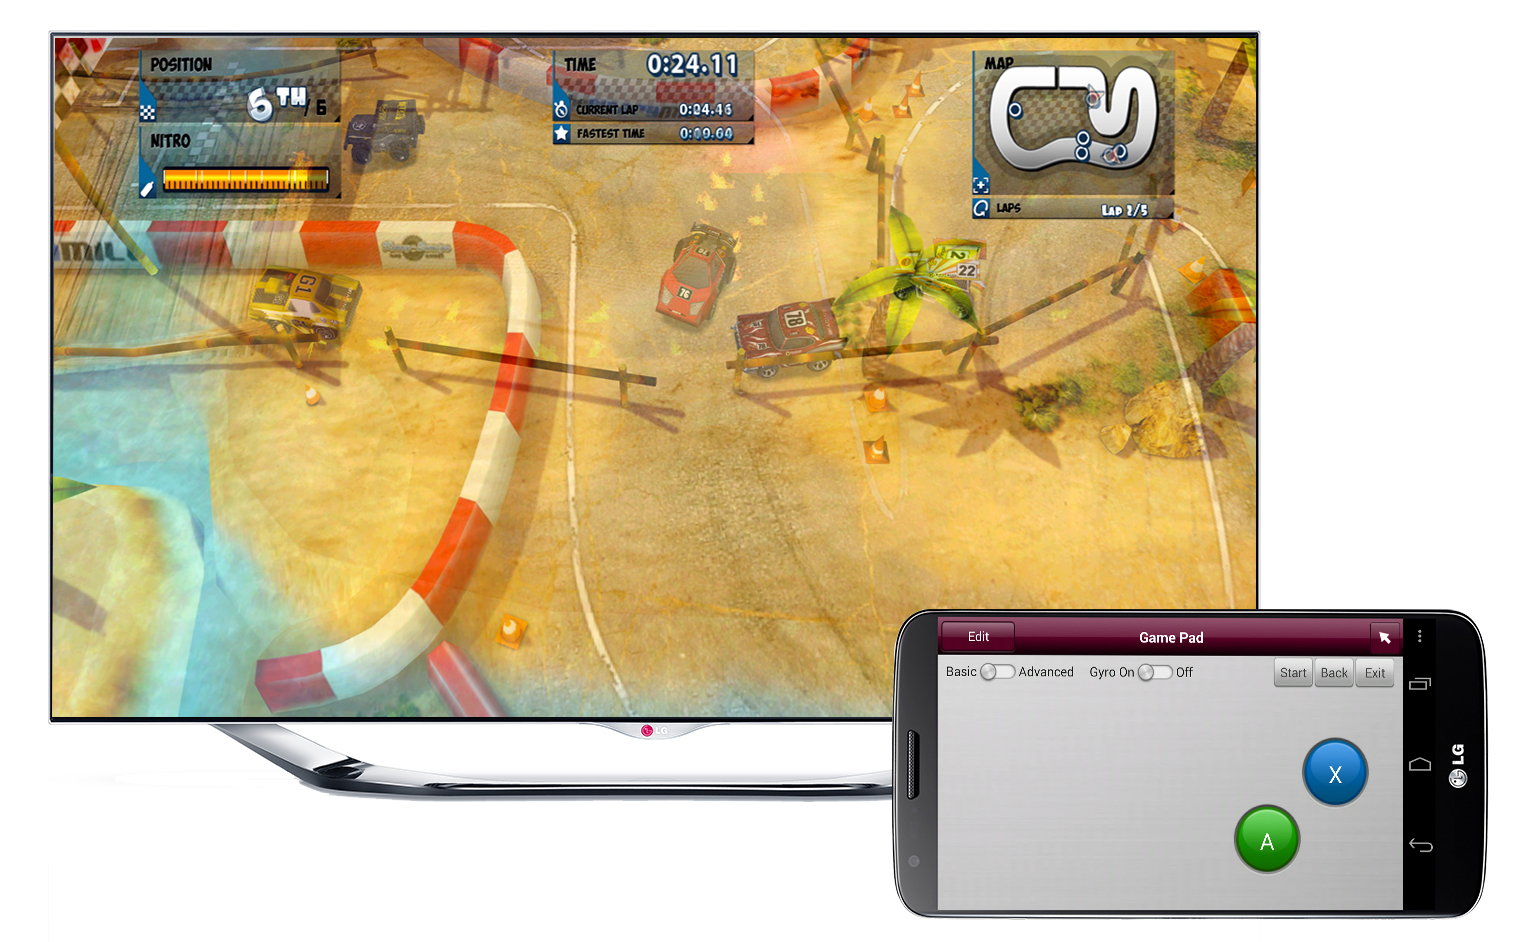 A LG Smart TV and a smartphone operating the AllJoyn open source software framework